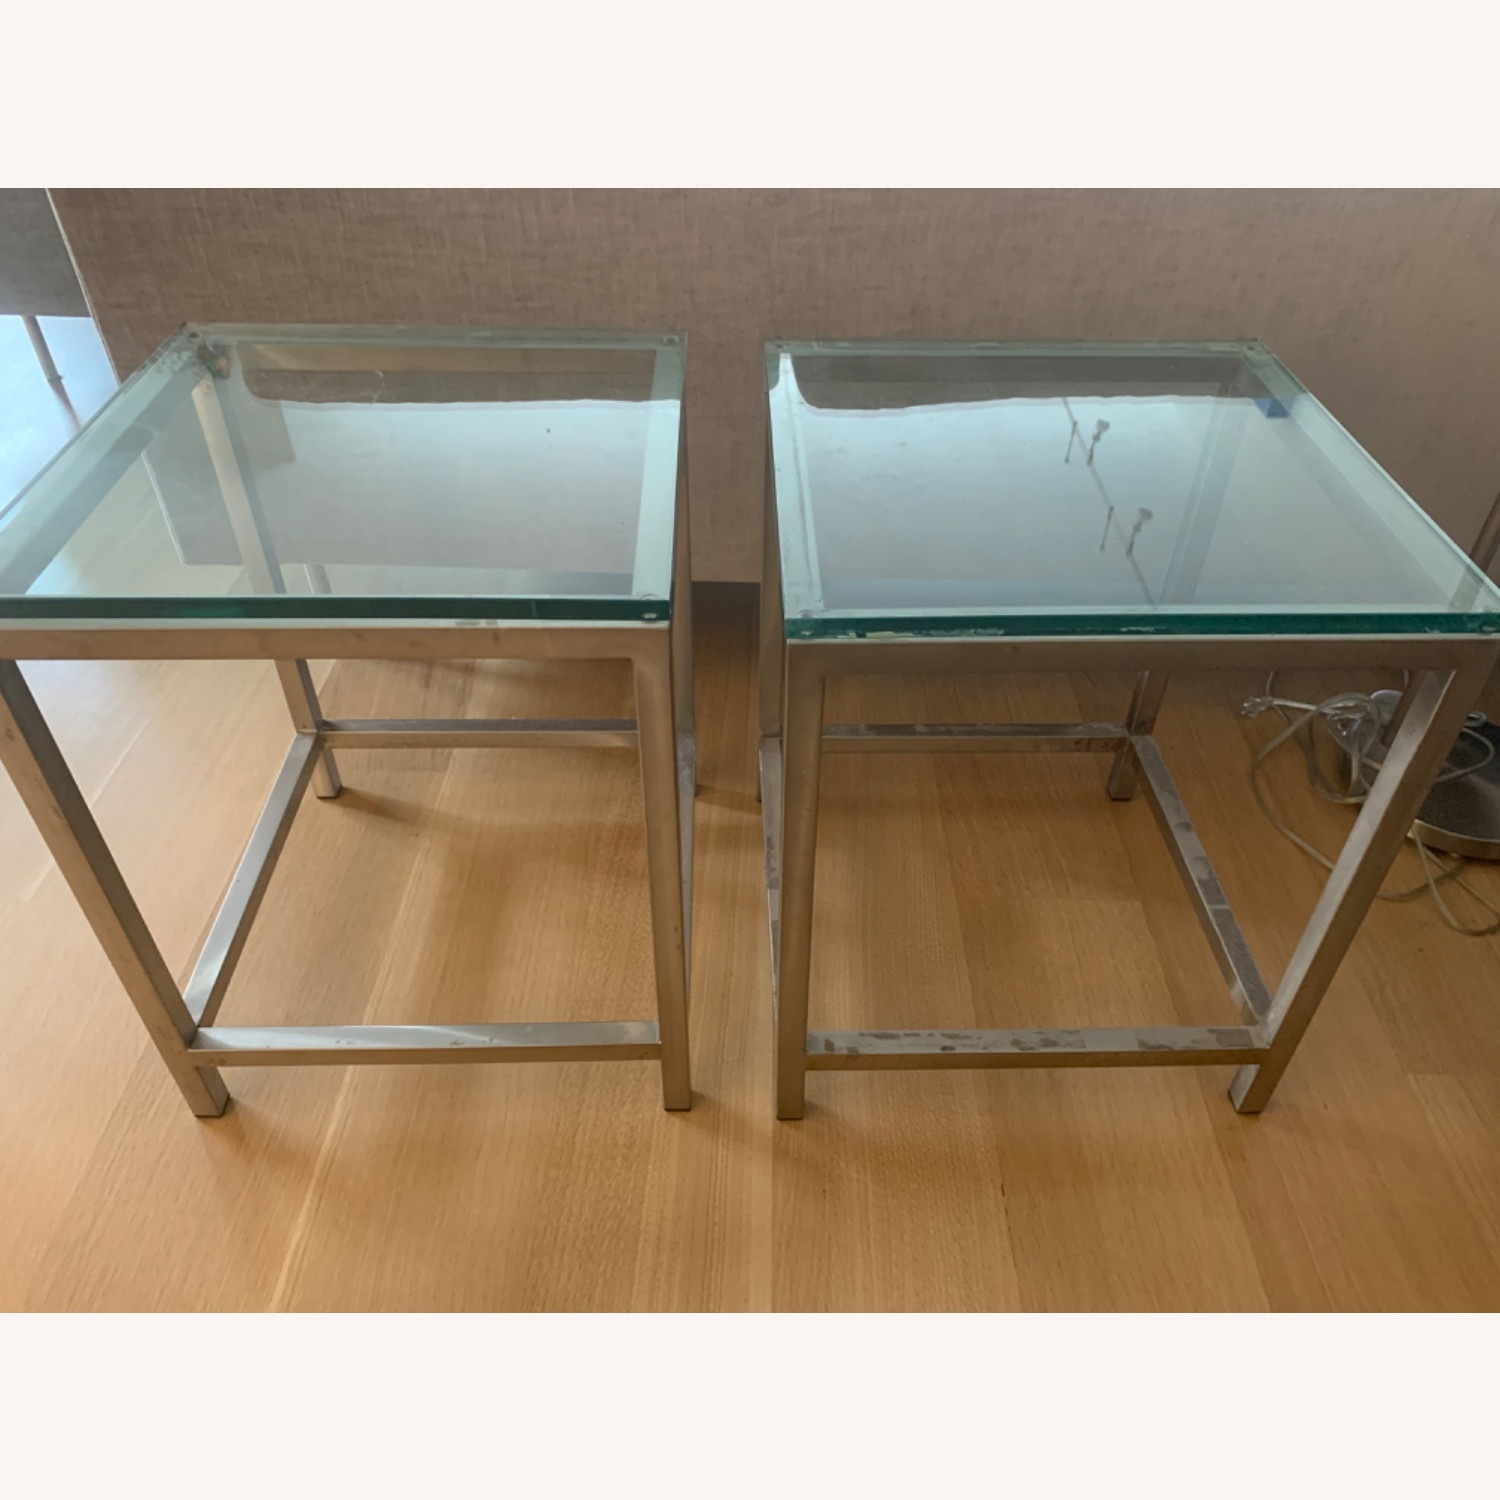 Crate & Barrel Glass-top Chrome Side Tables - image-1